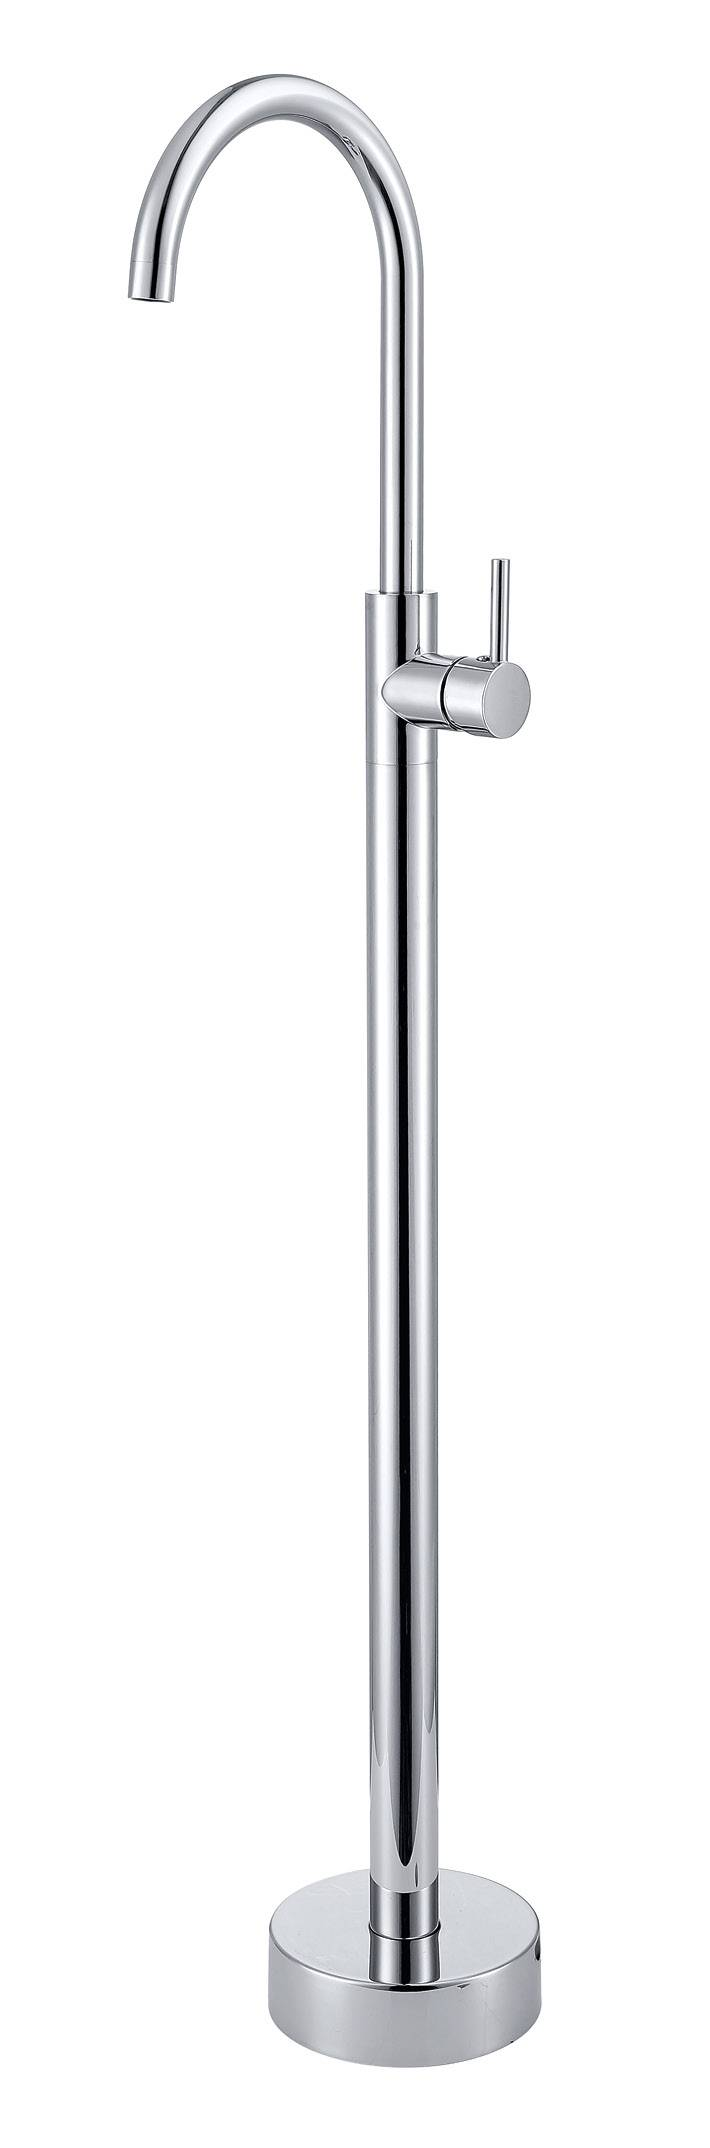 Solid Brass Contemporary Floor Standing Pedestal Bathtub Faucet- Chrome Finish